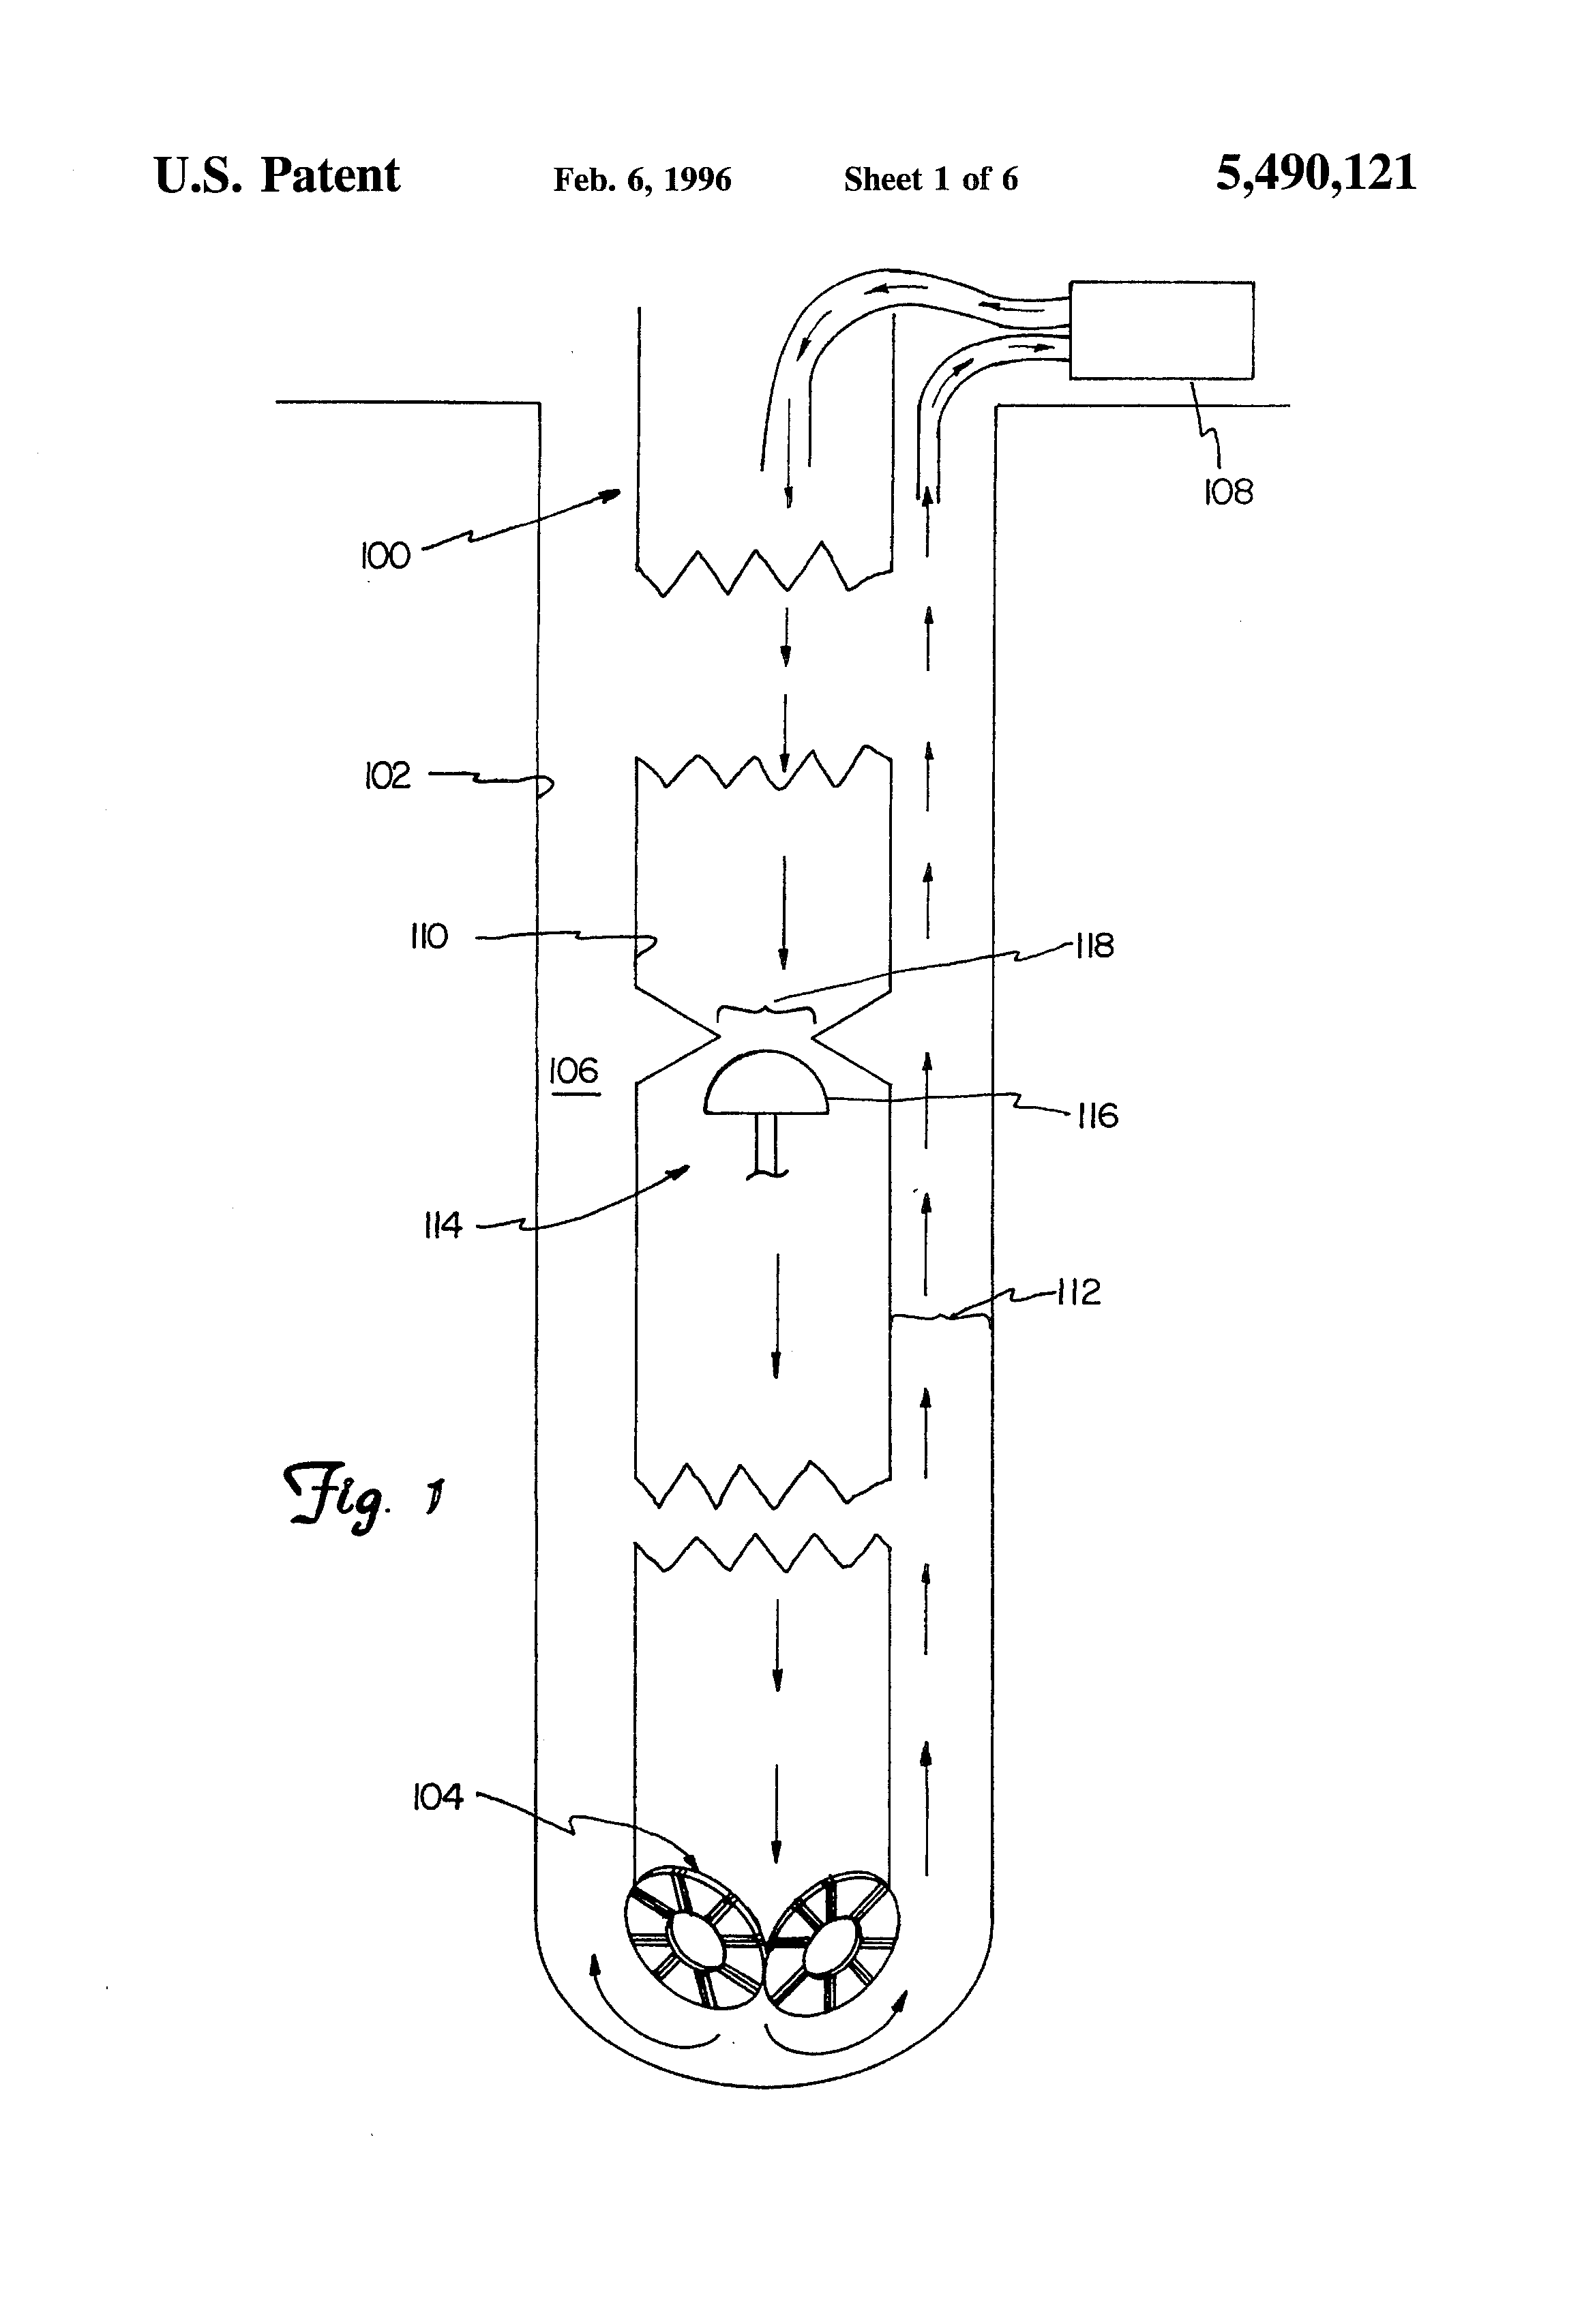 Patent Us5490121 Nonlinear Equalizer For Measurement While Telemetry Block Diagram Of Dsp Based Drawing